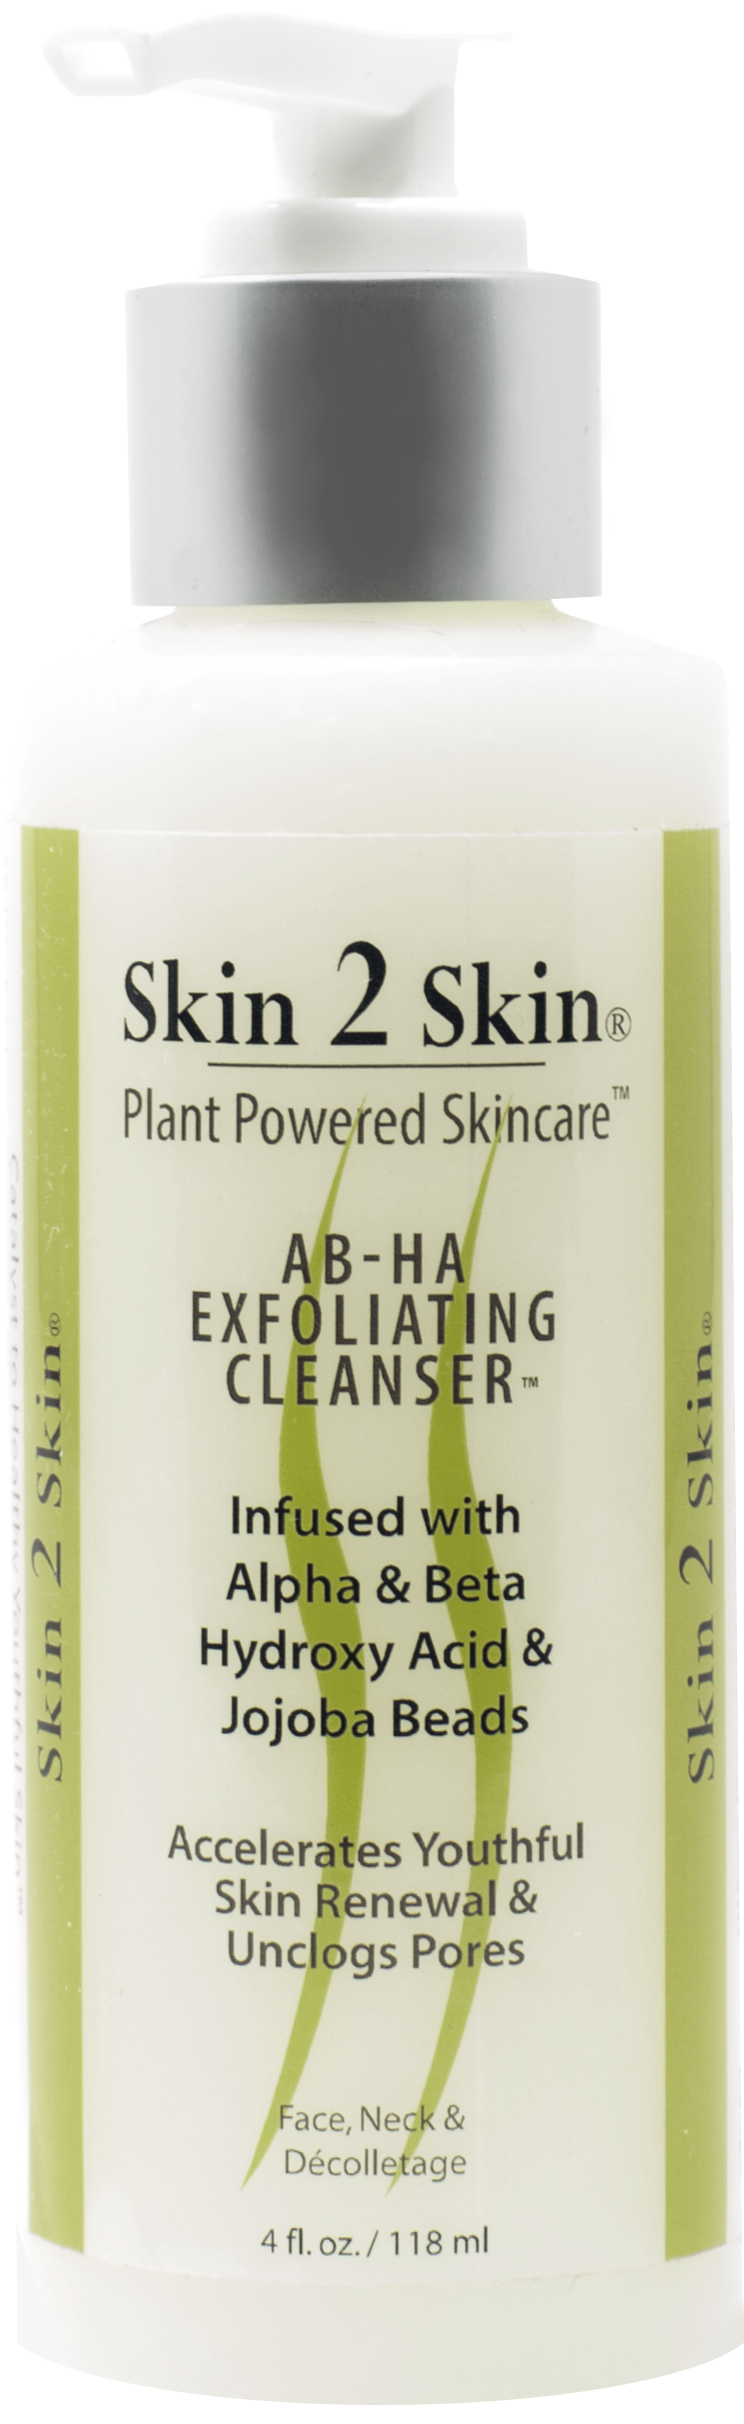 Skin 2 Skin AB-HA Exfoliating Cleanser